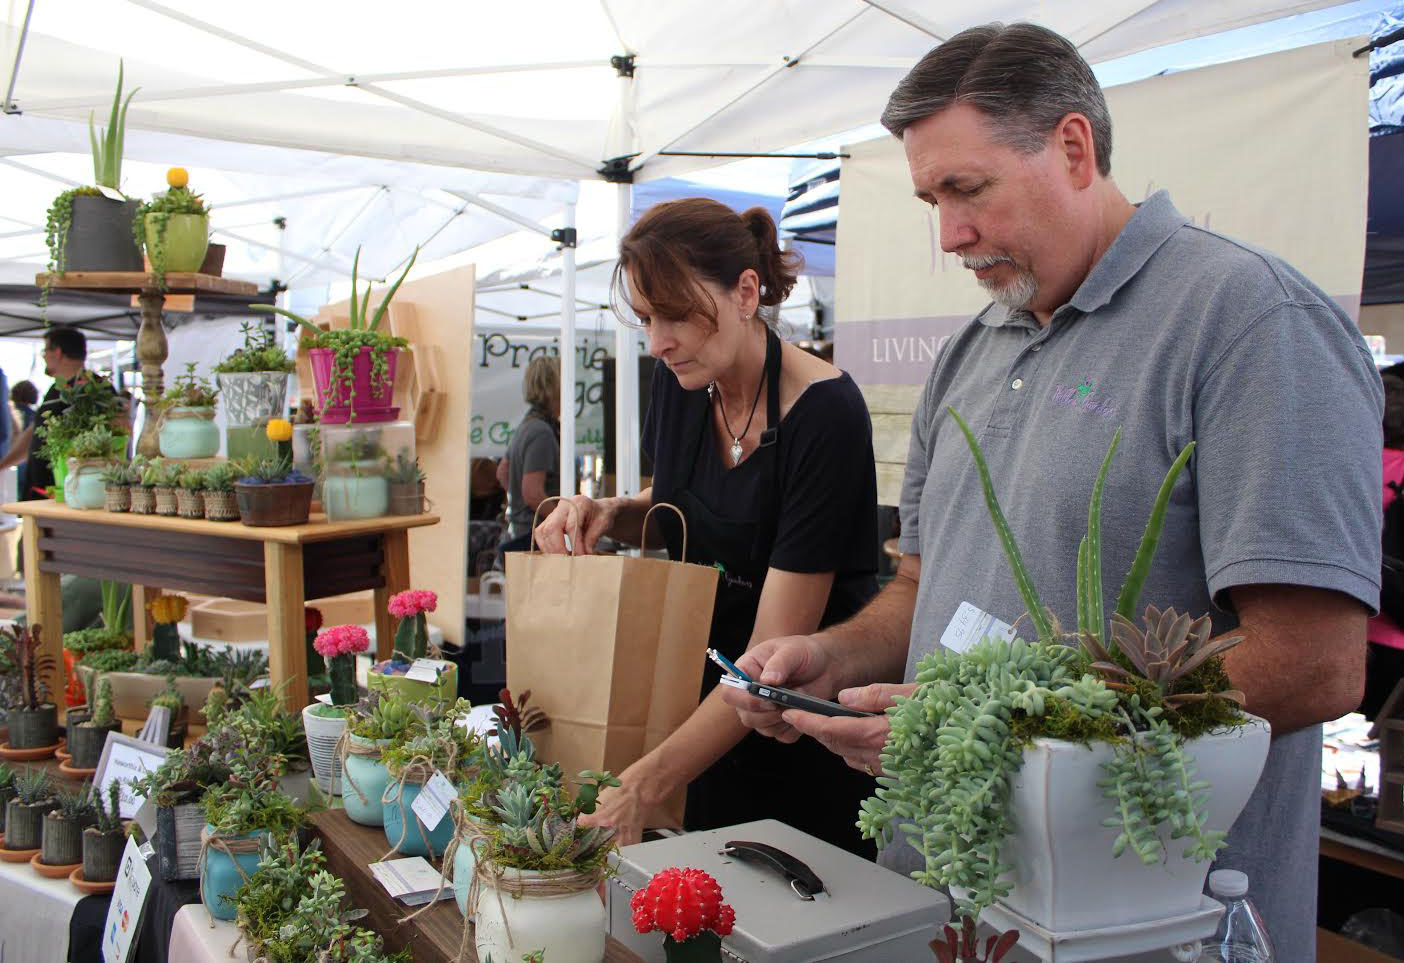 Dee and Phil Mullen, owners of the floral design company Willow Gardens, prepare to check out customers. This was the Mullens' first year at the GLAM Craft Show. (Photo by Sophie Smadbeck/WUFT News)